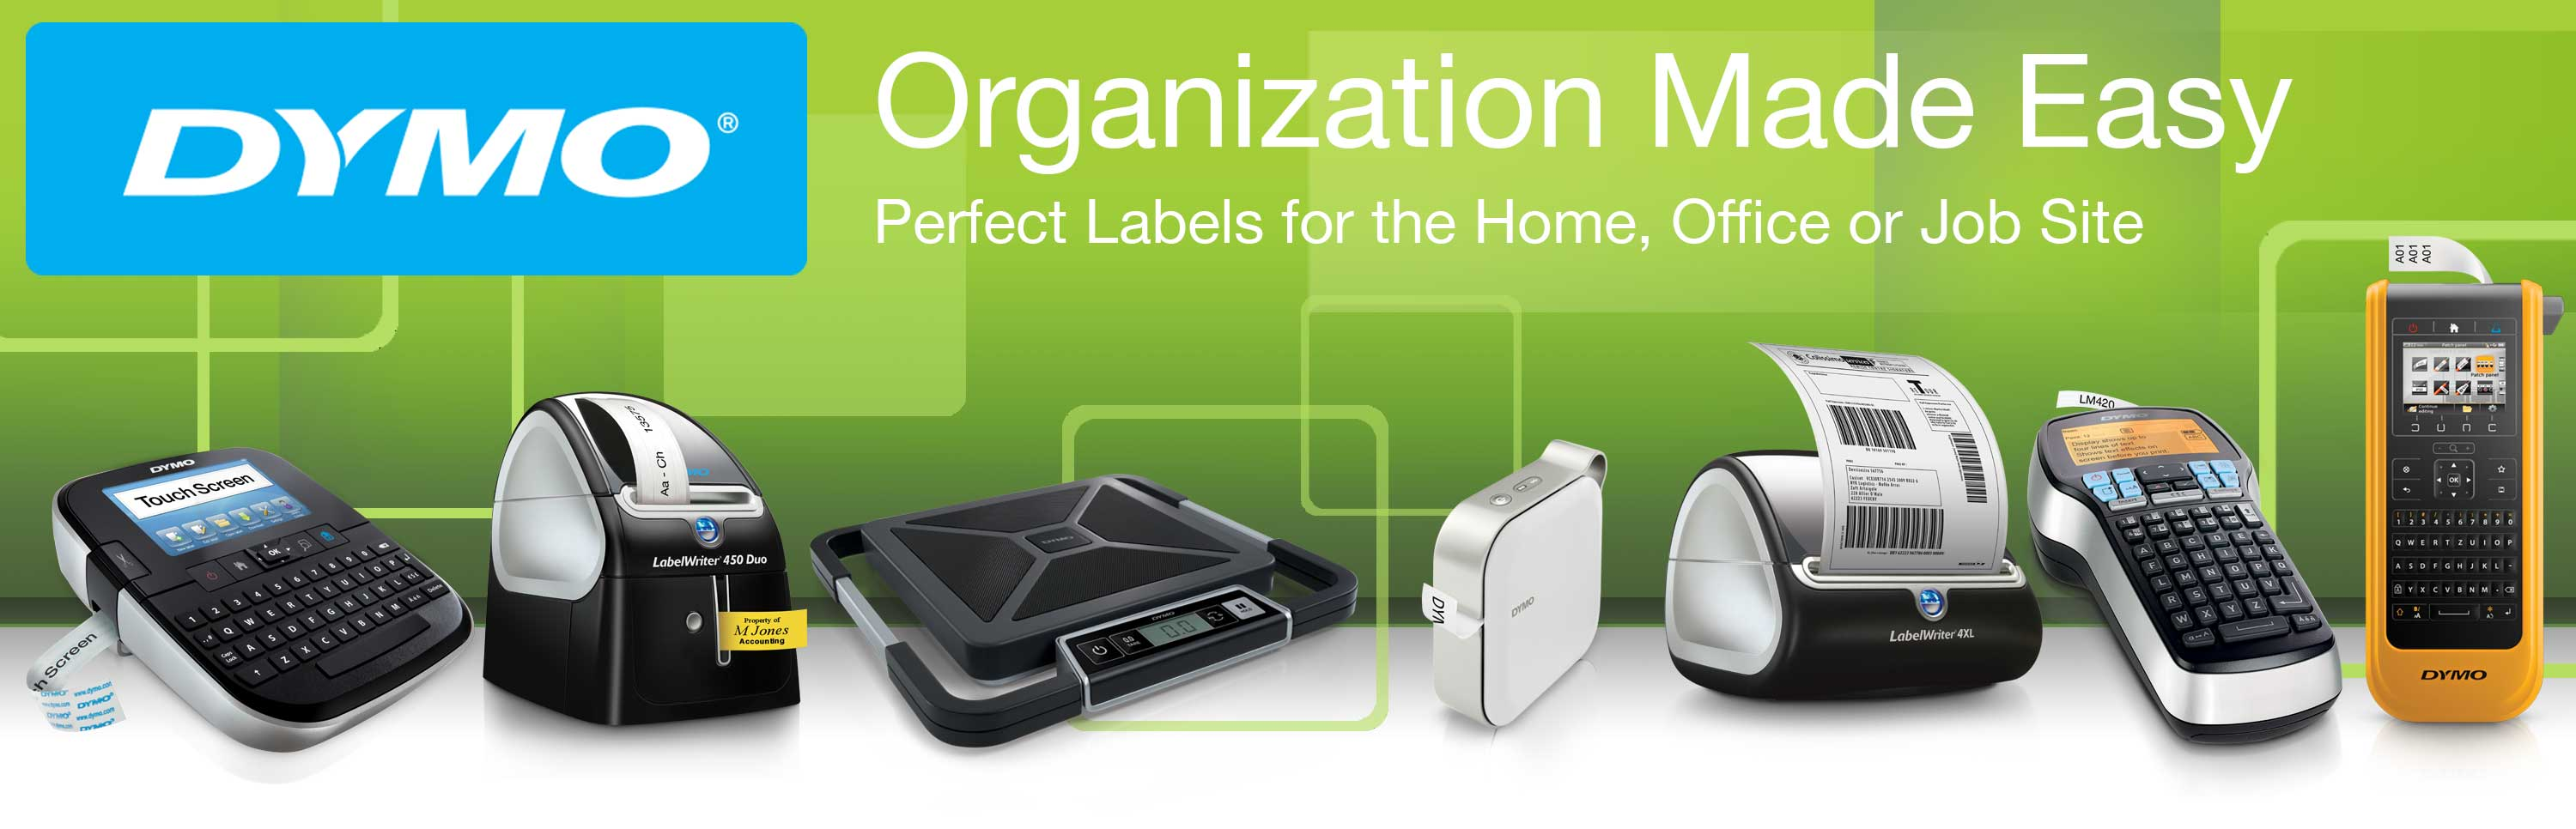 Office depot services register new product - Shop All Dymo Products